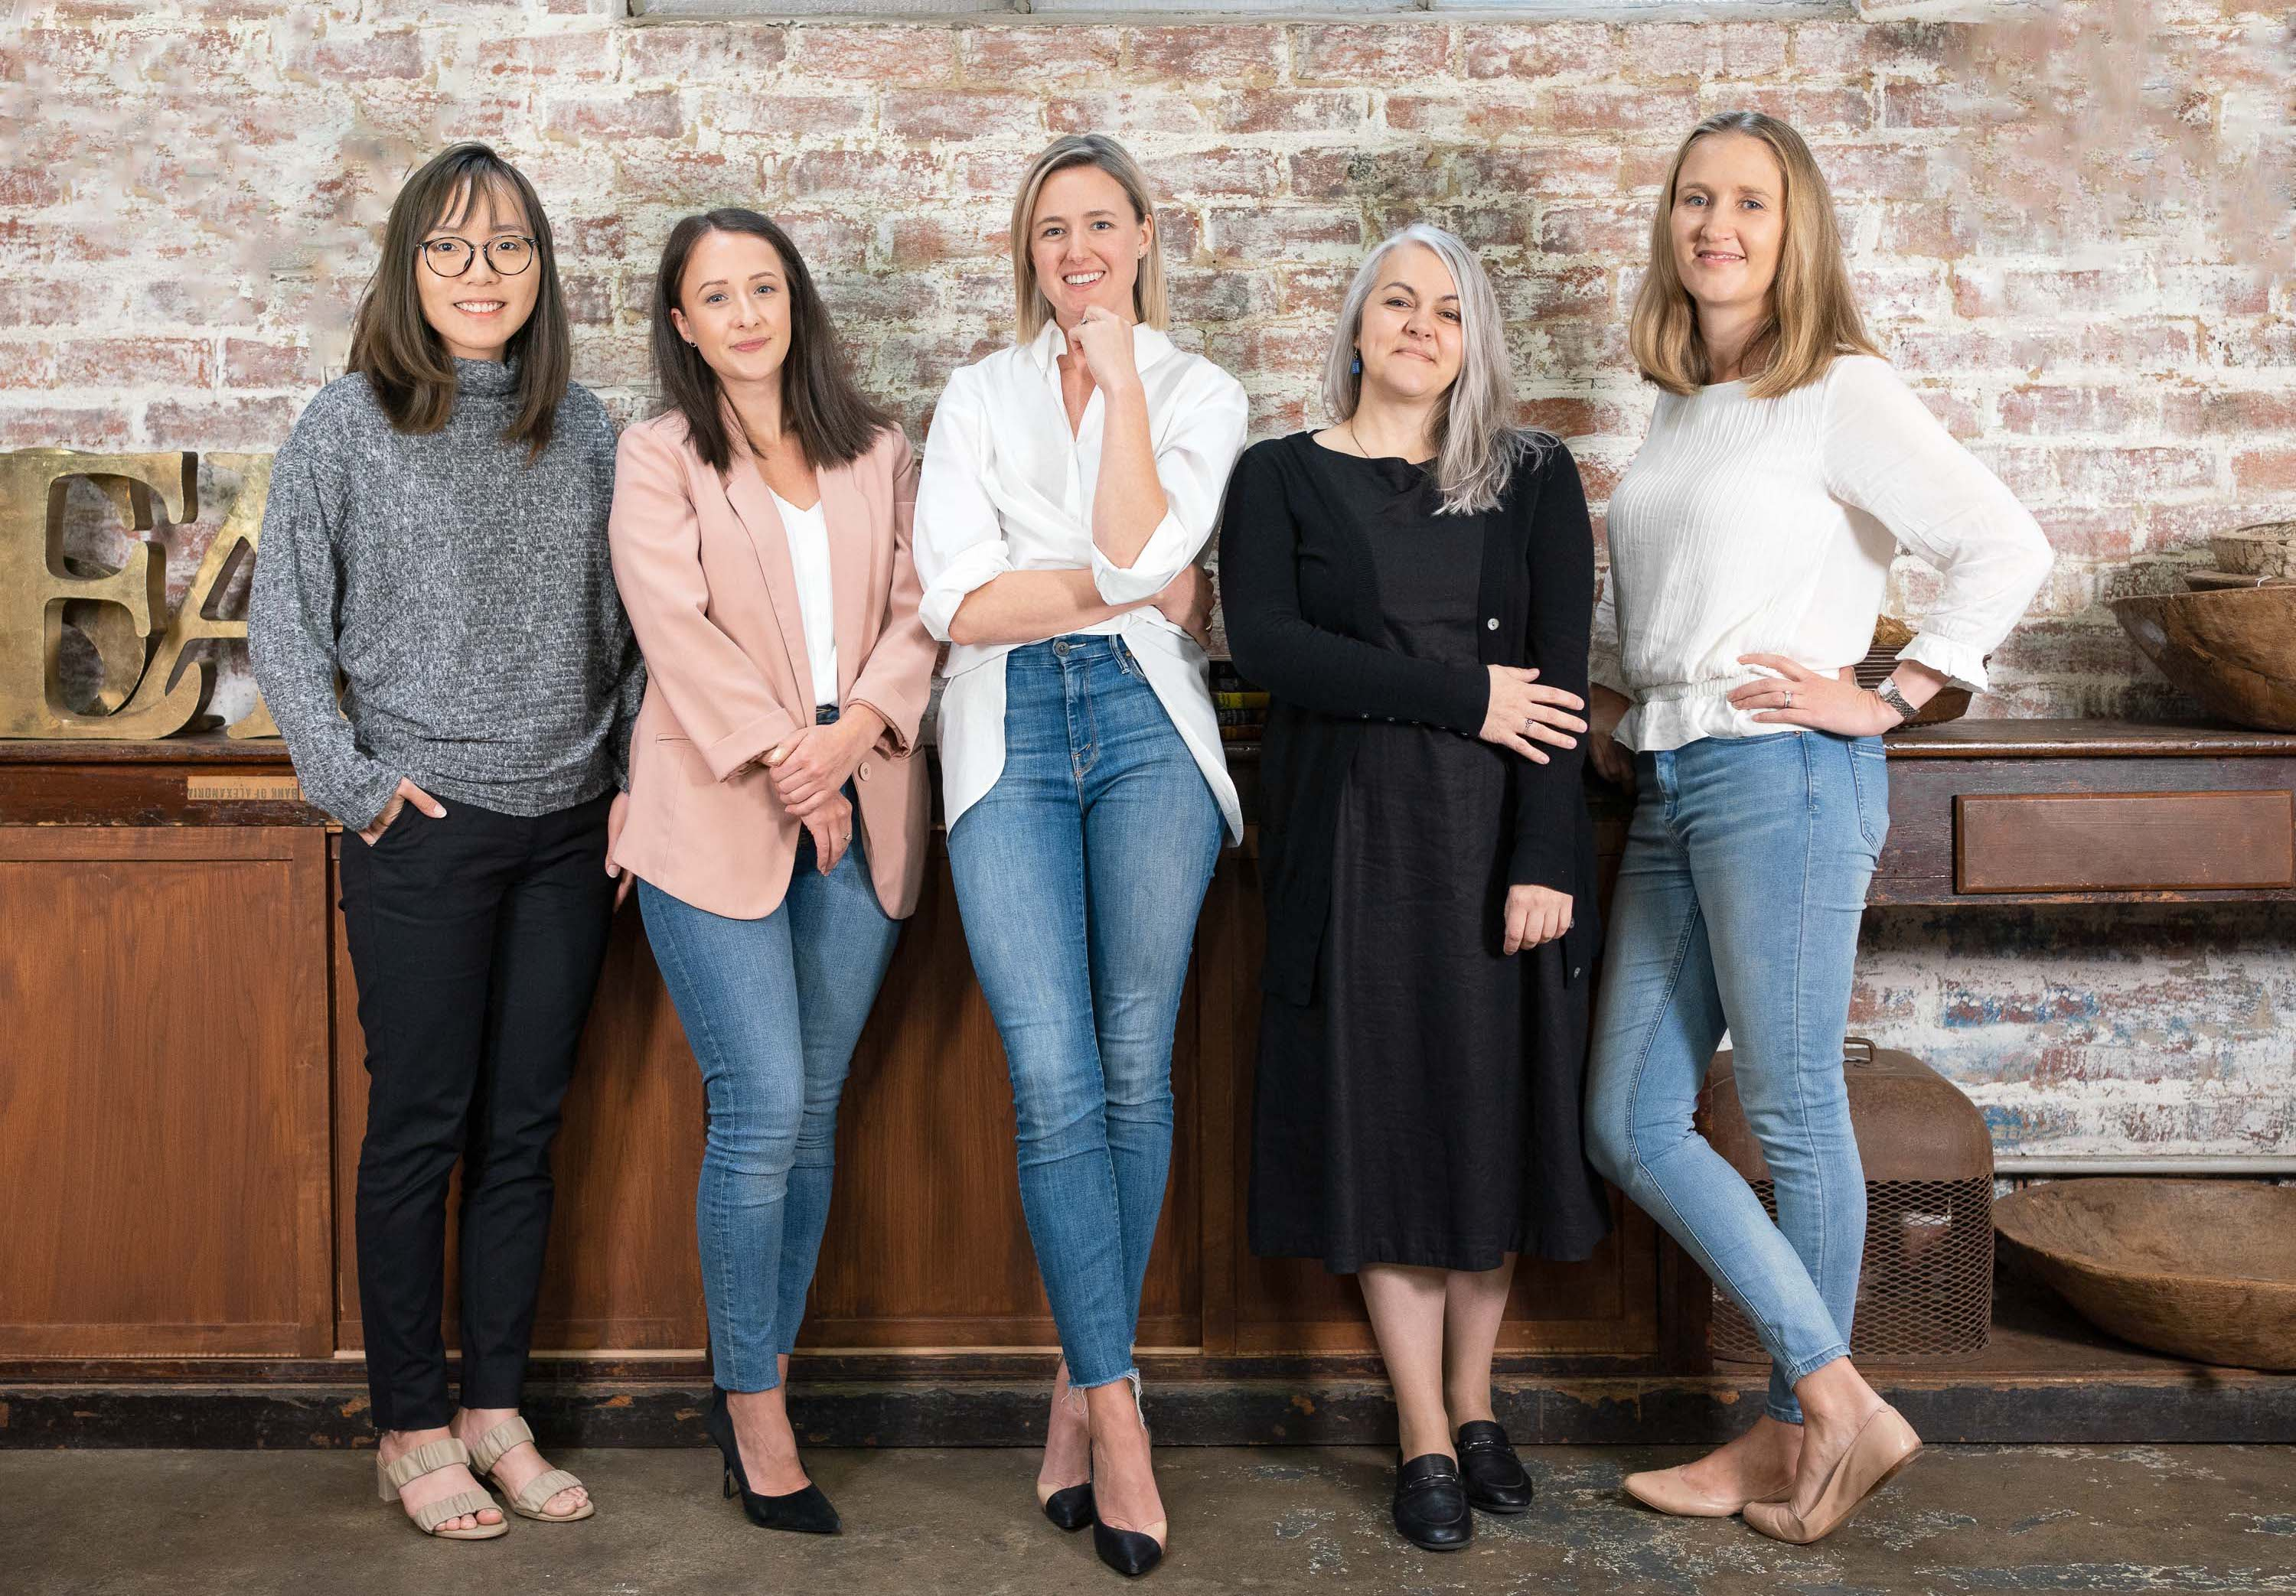 International Women's Day - Celebrating Metronome's Women